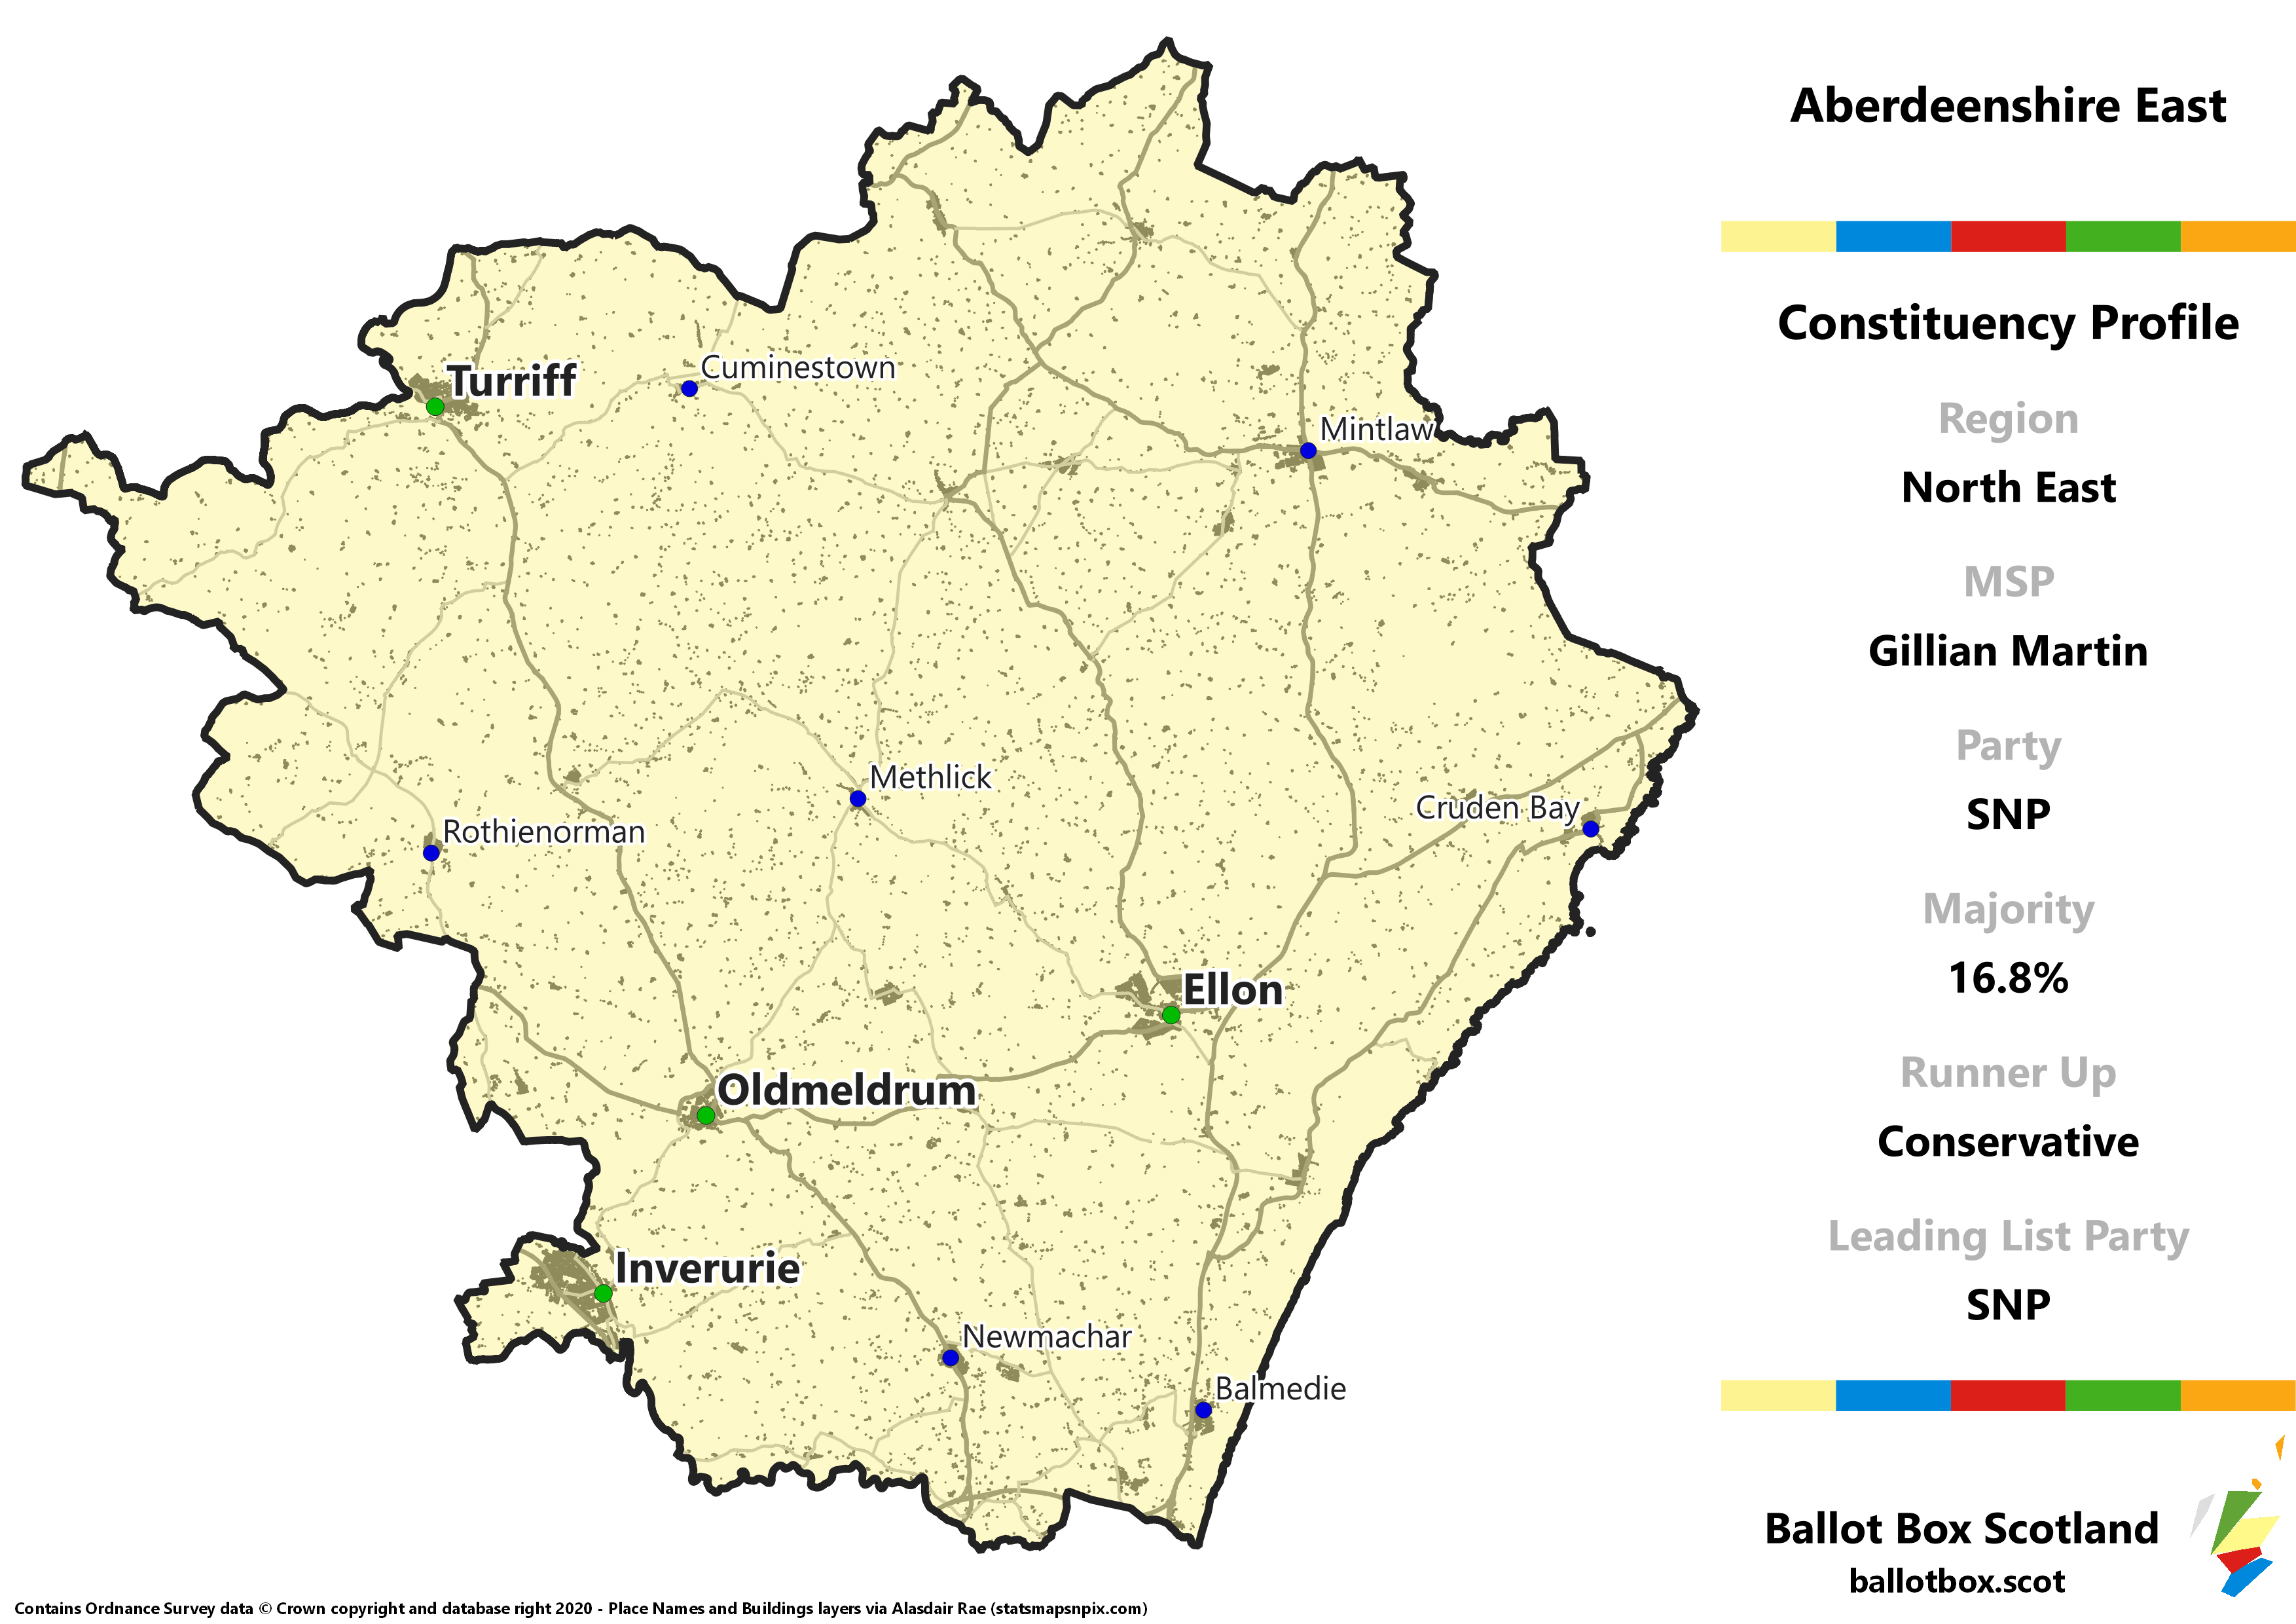 North East Region – Aberdeenshire East Constituency Map